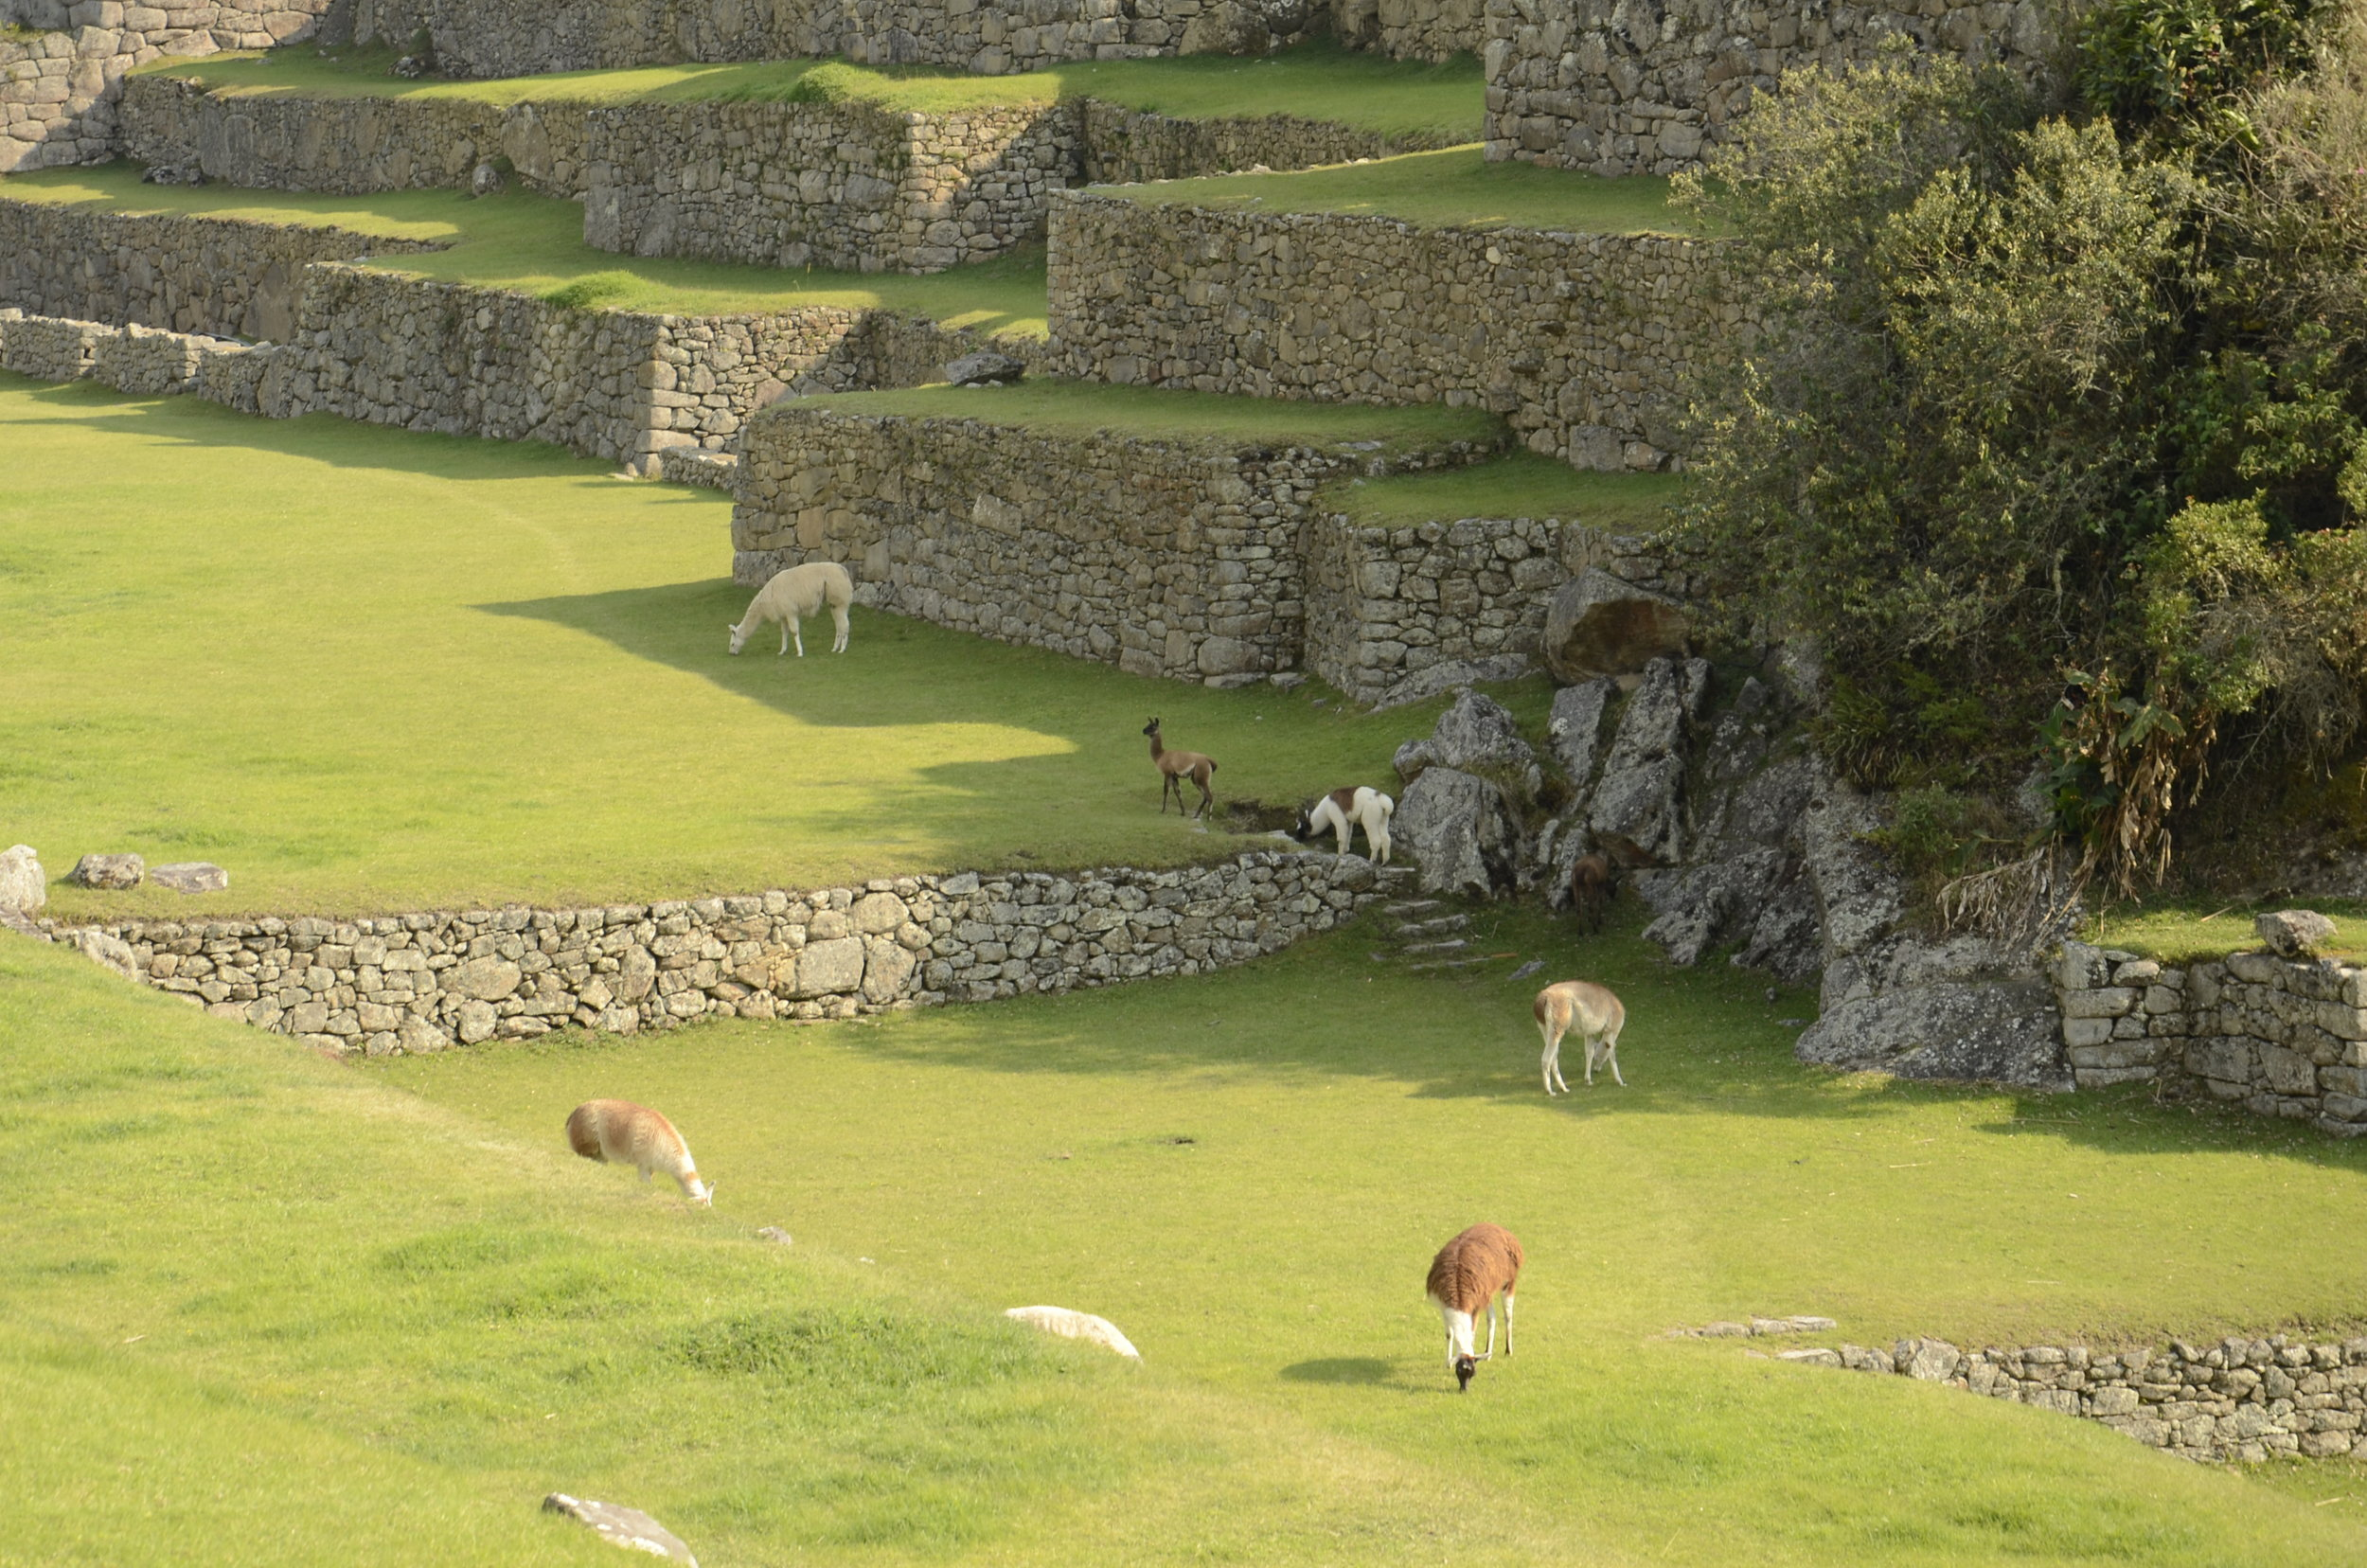 Llamas roam freely on the terraces